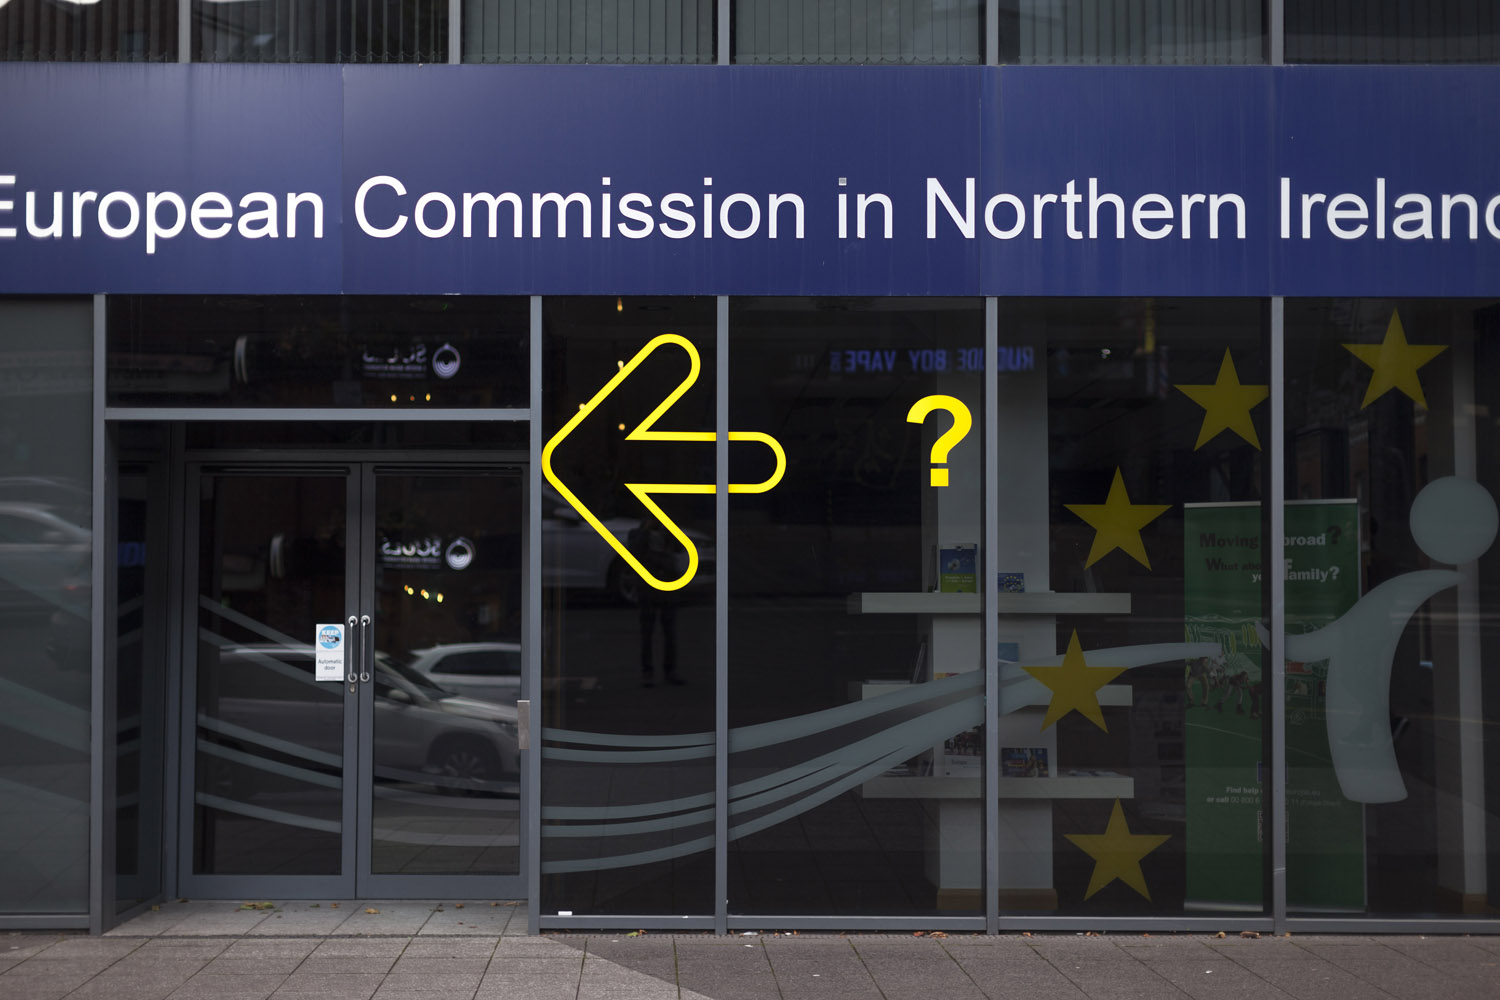 The European Union has played a central role in Northern Ireland's peace process, financing infrastructure, cultural activities and social programs, and allowing to open the border with the rest of Ireland. The consequences of Brexit, which was rejected by more than half of Northern Ireland's population, remain unclear to this day.